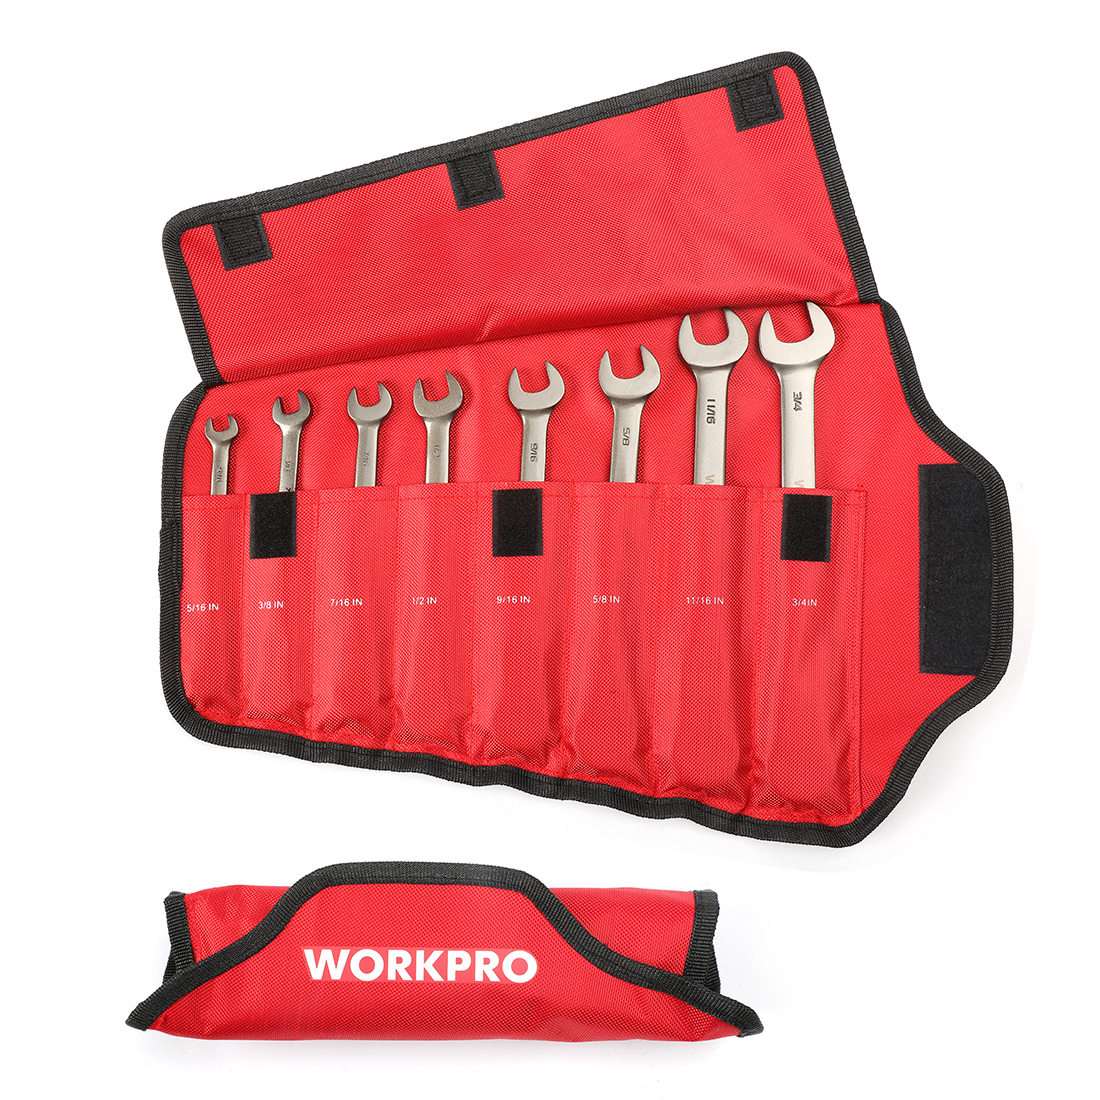 Tools SAE Home Combination Wrench Ratcheting Repair Wrenches 8PC Flex Set Head Metric WORKPRO